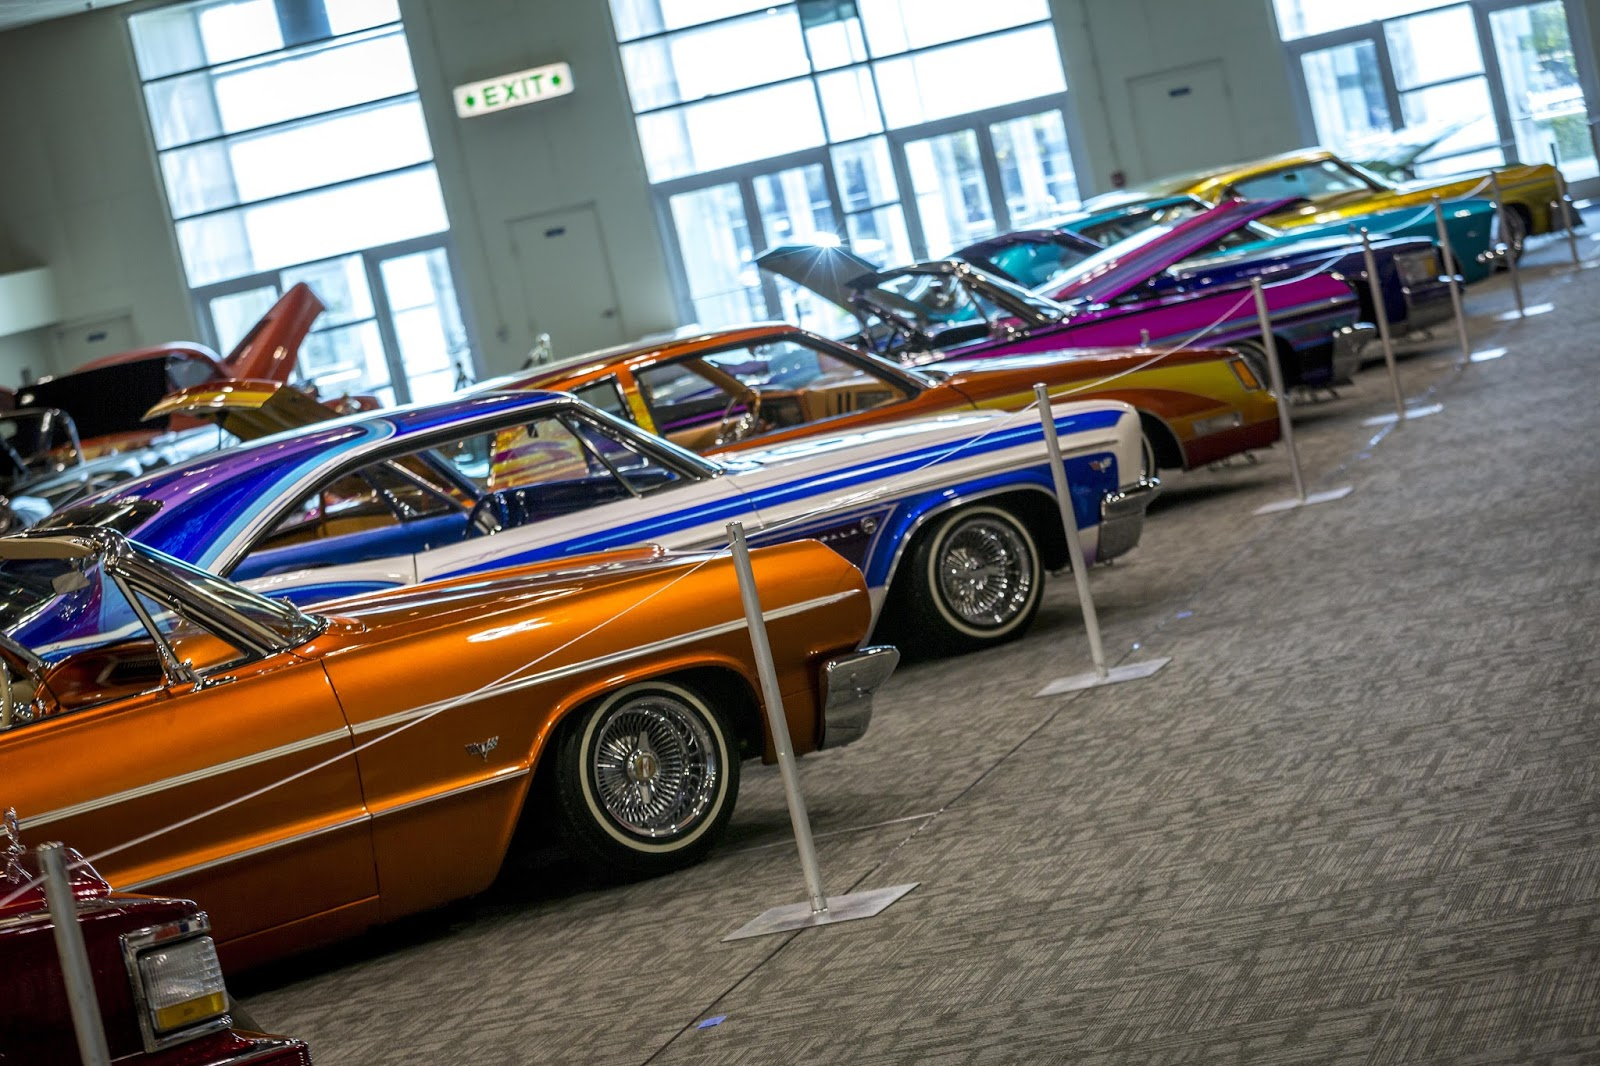 The Grand National Roadster Show